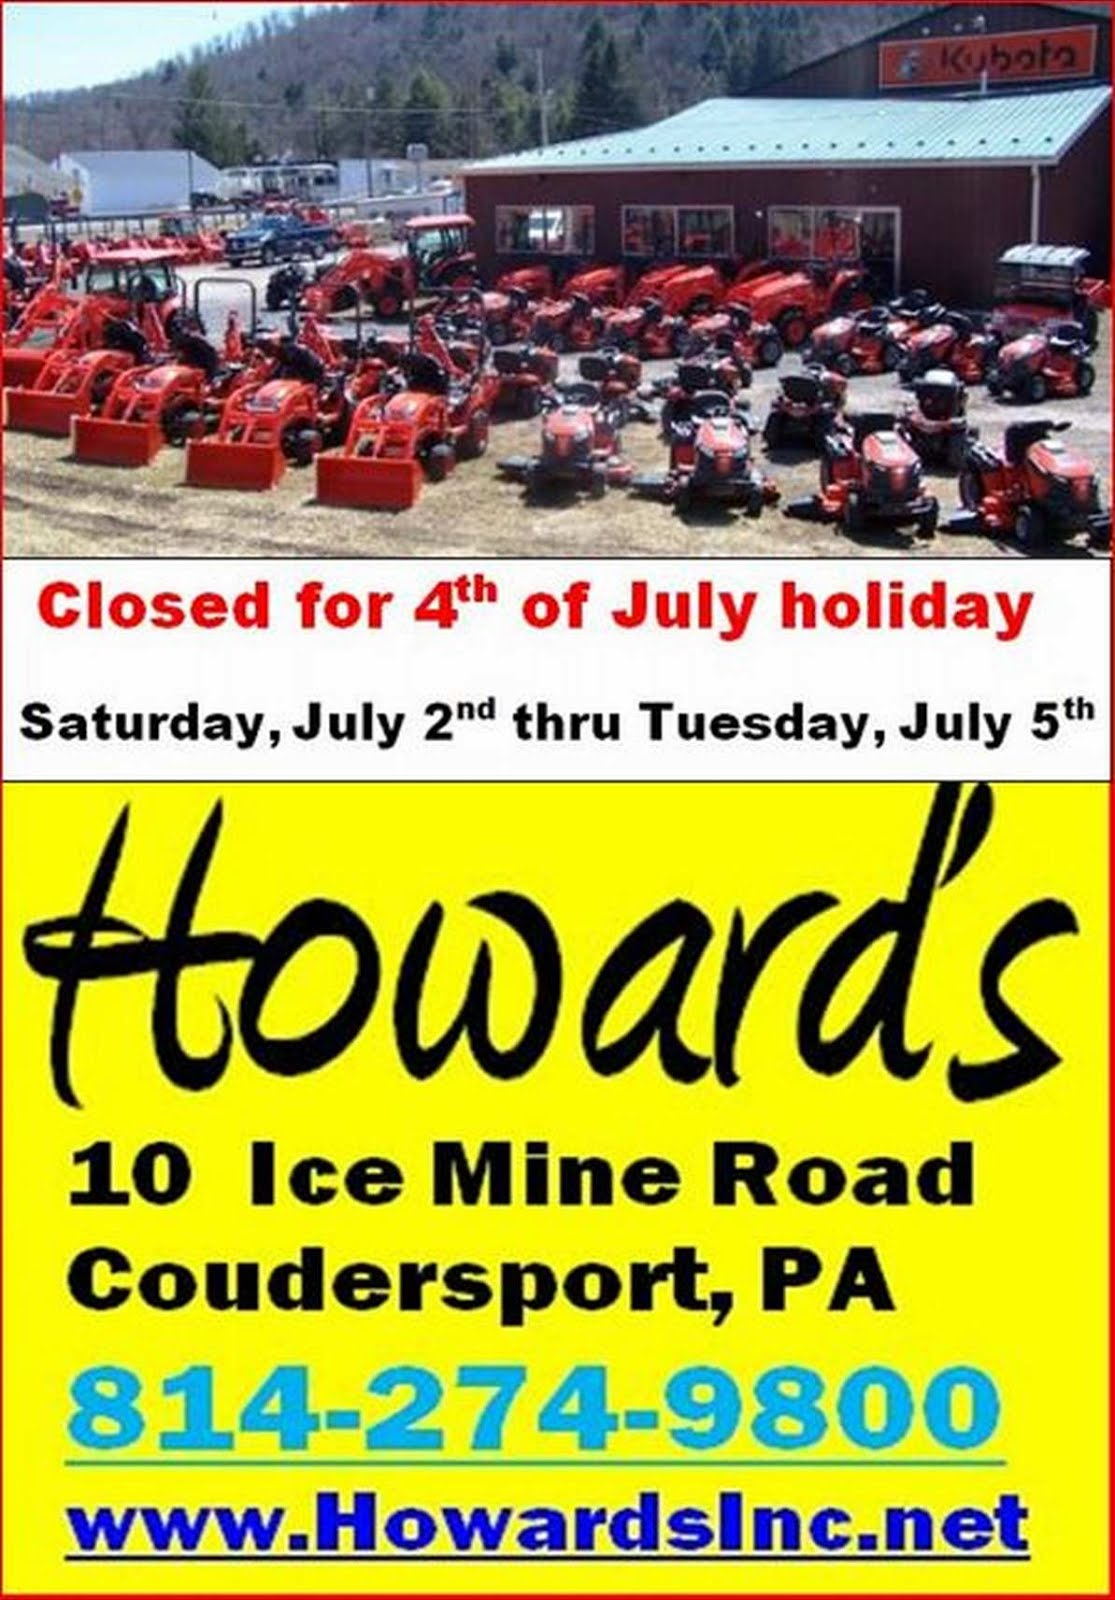 Howards, Inc., Coudersport